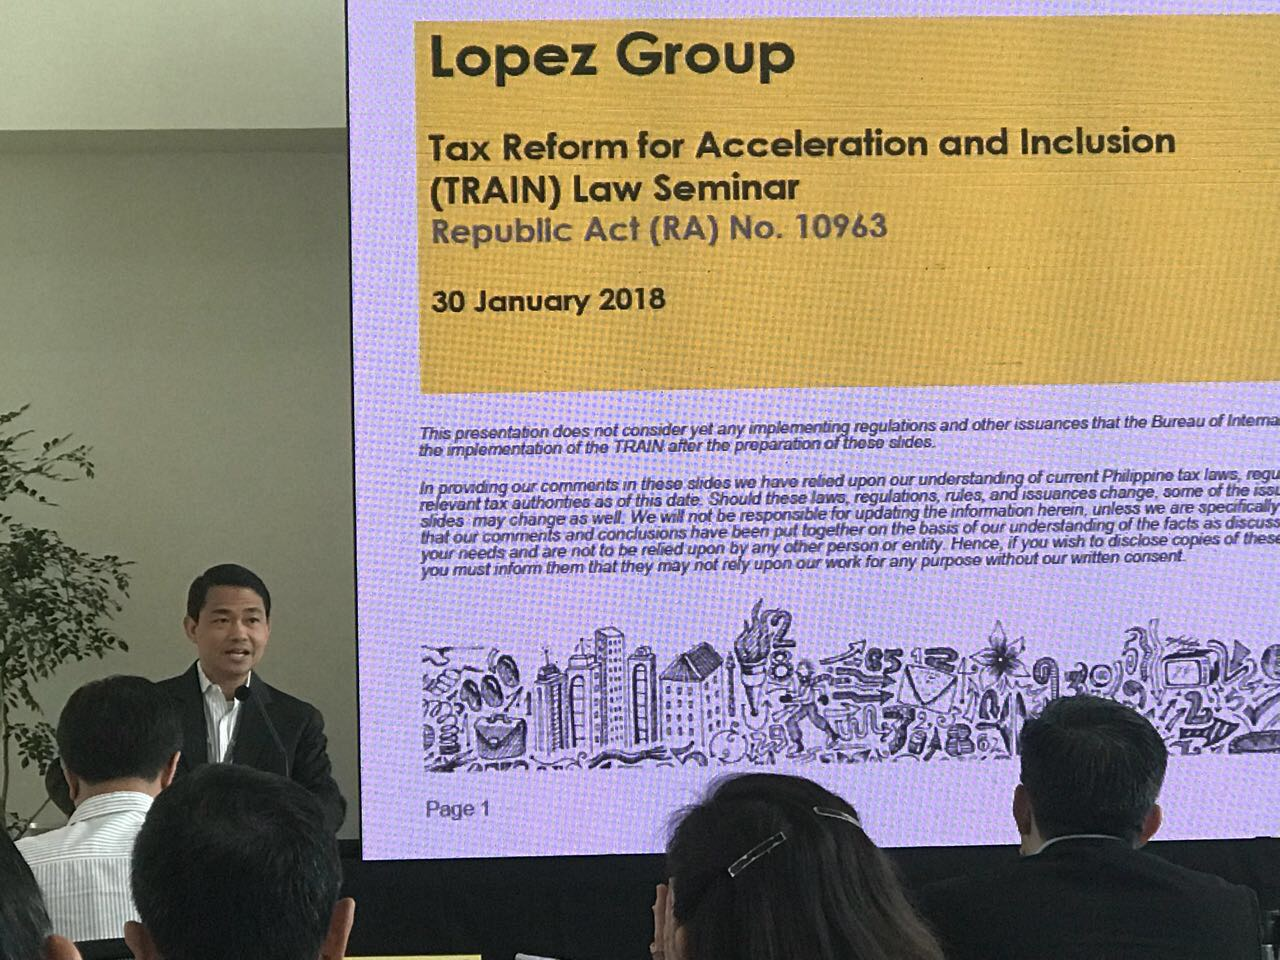 Lopez Group execs brush up on TRAIN